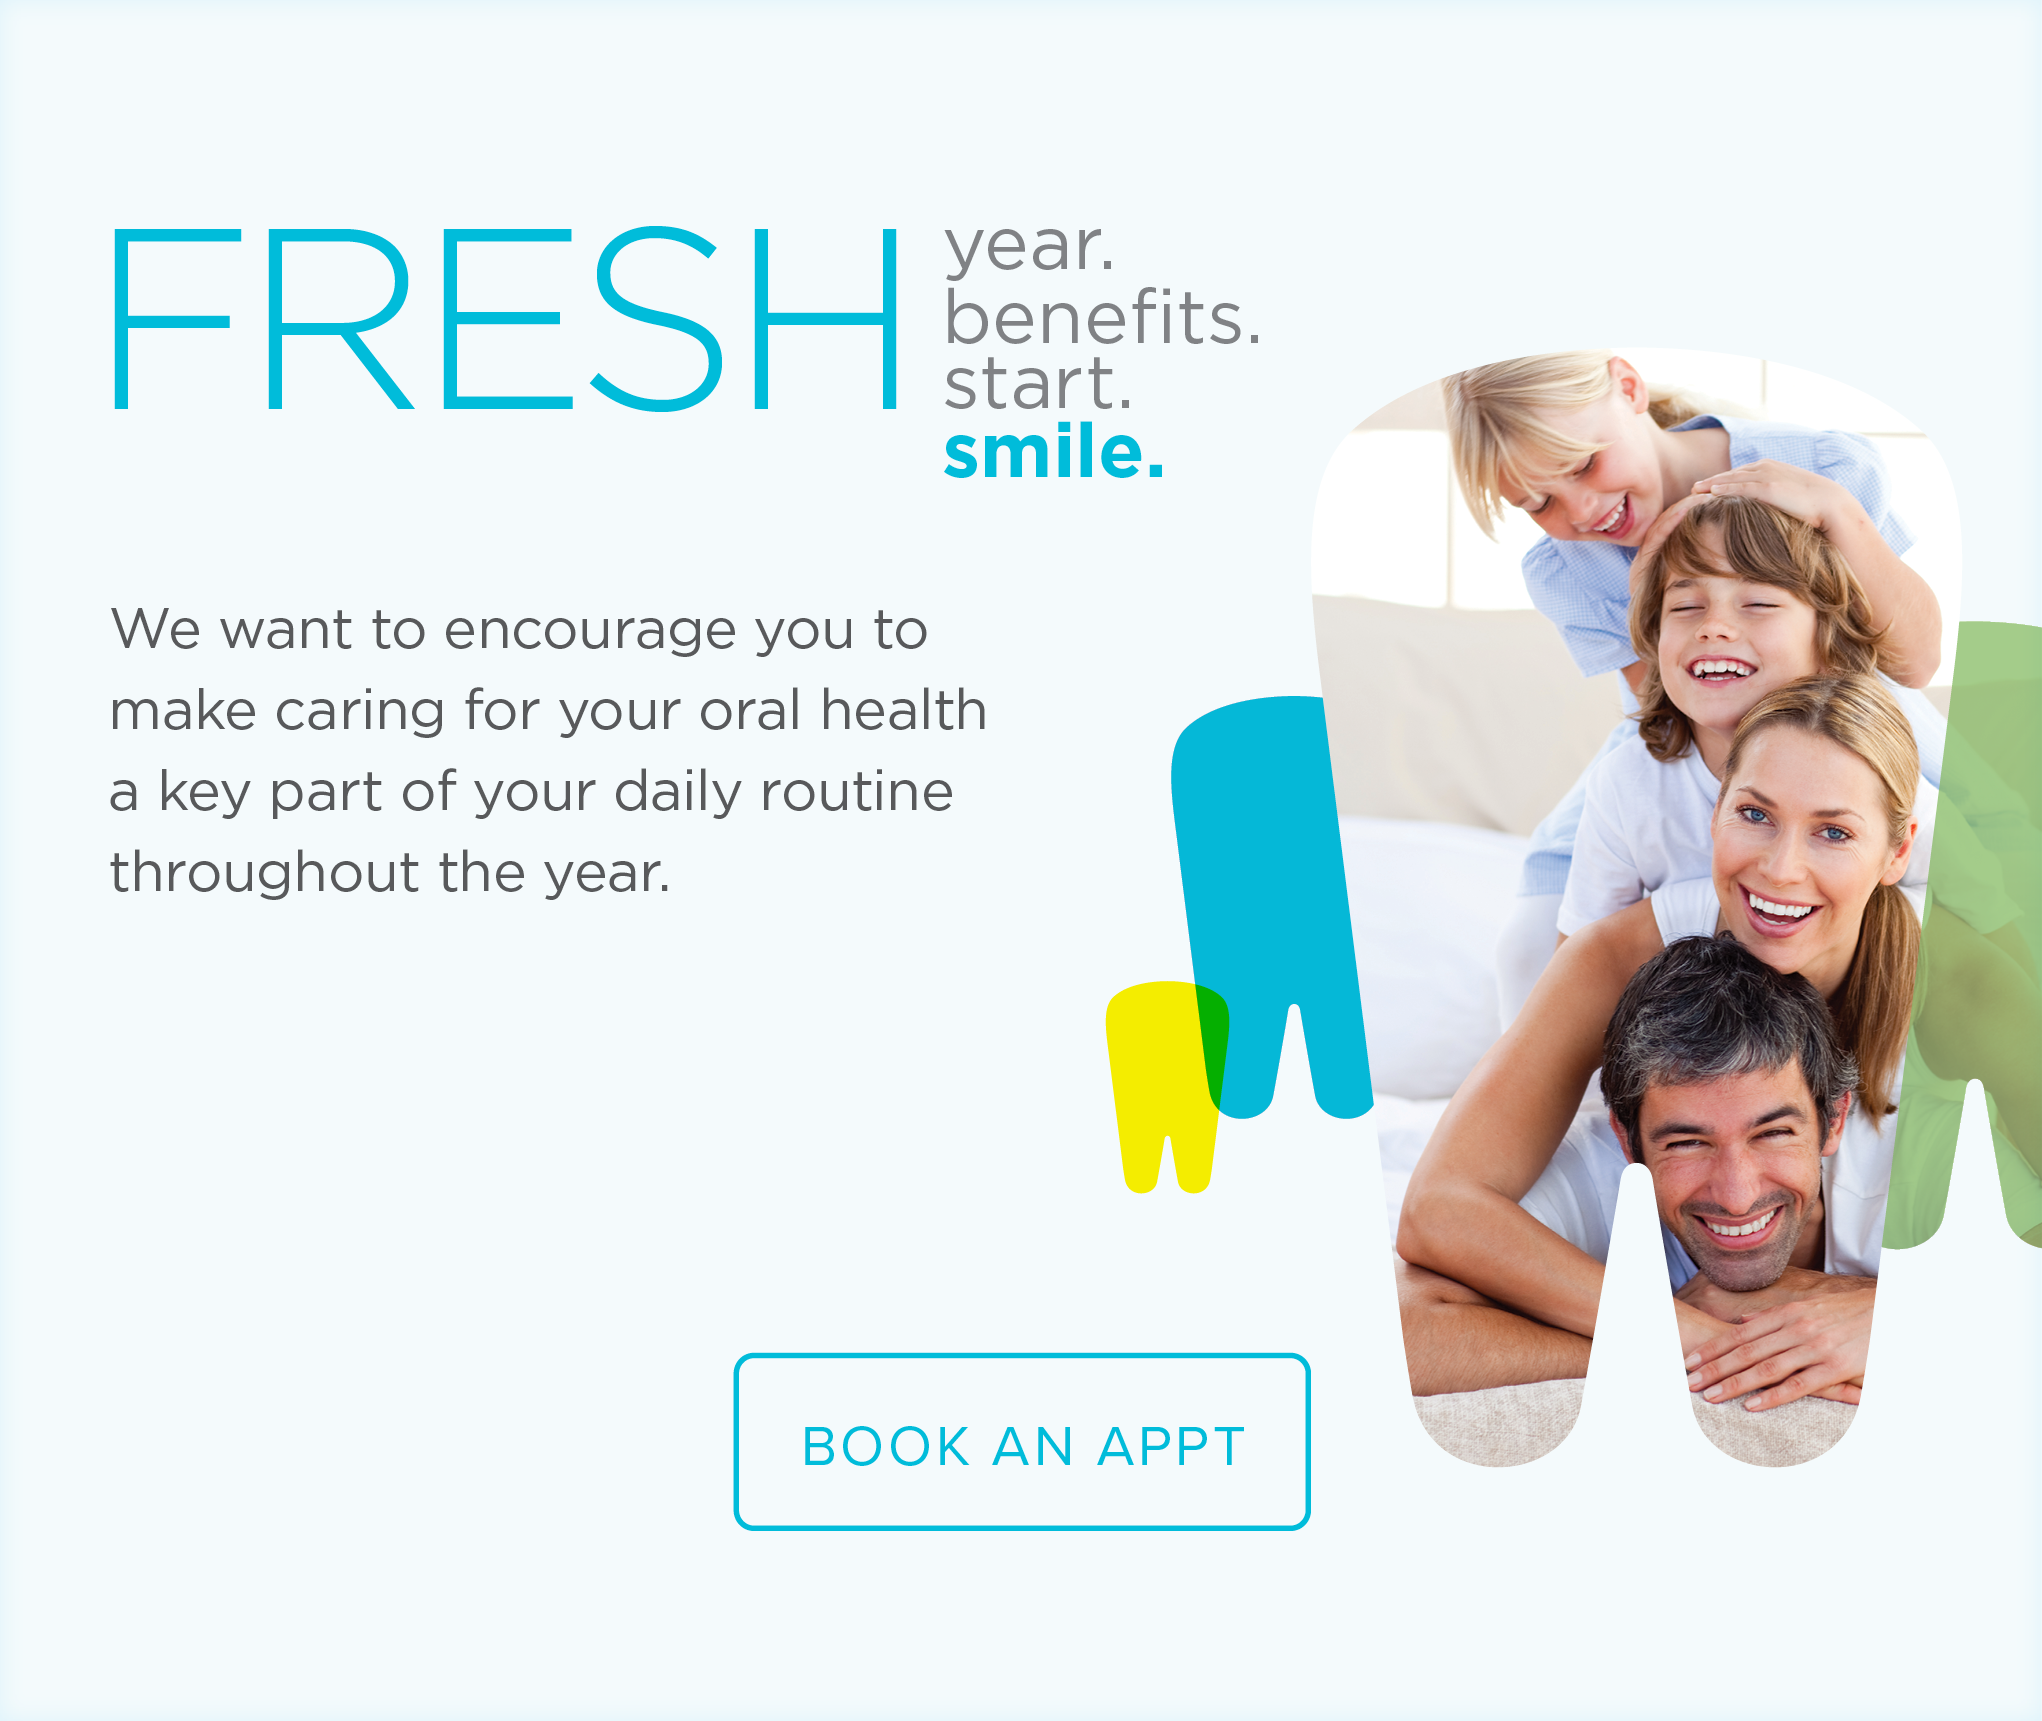 La Jolla Village Smiles Dentistry and Implants - Make the Most of Your Benefits